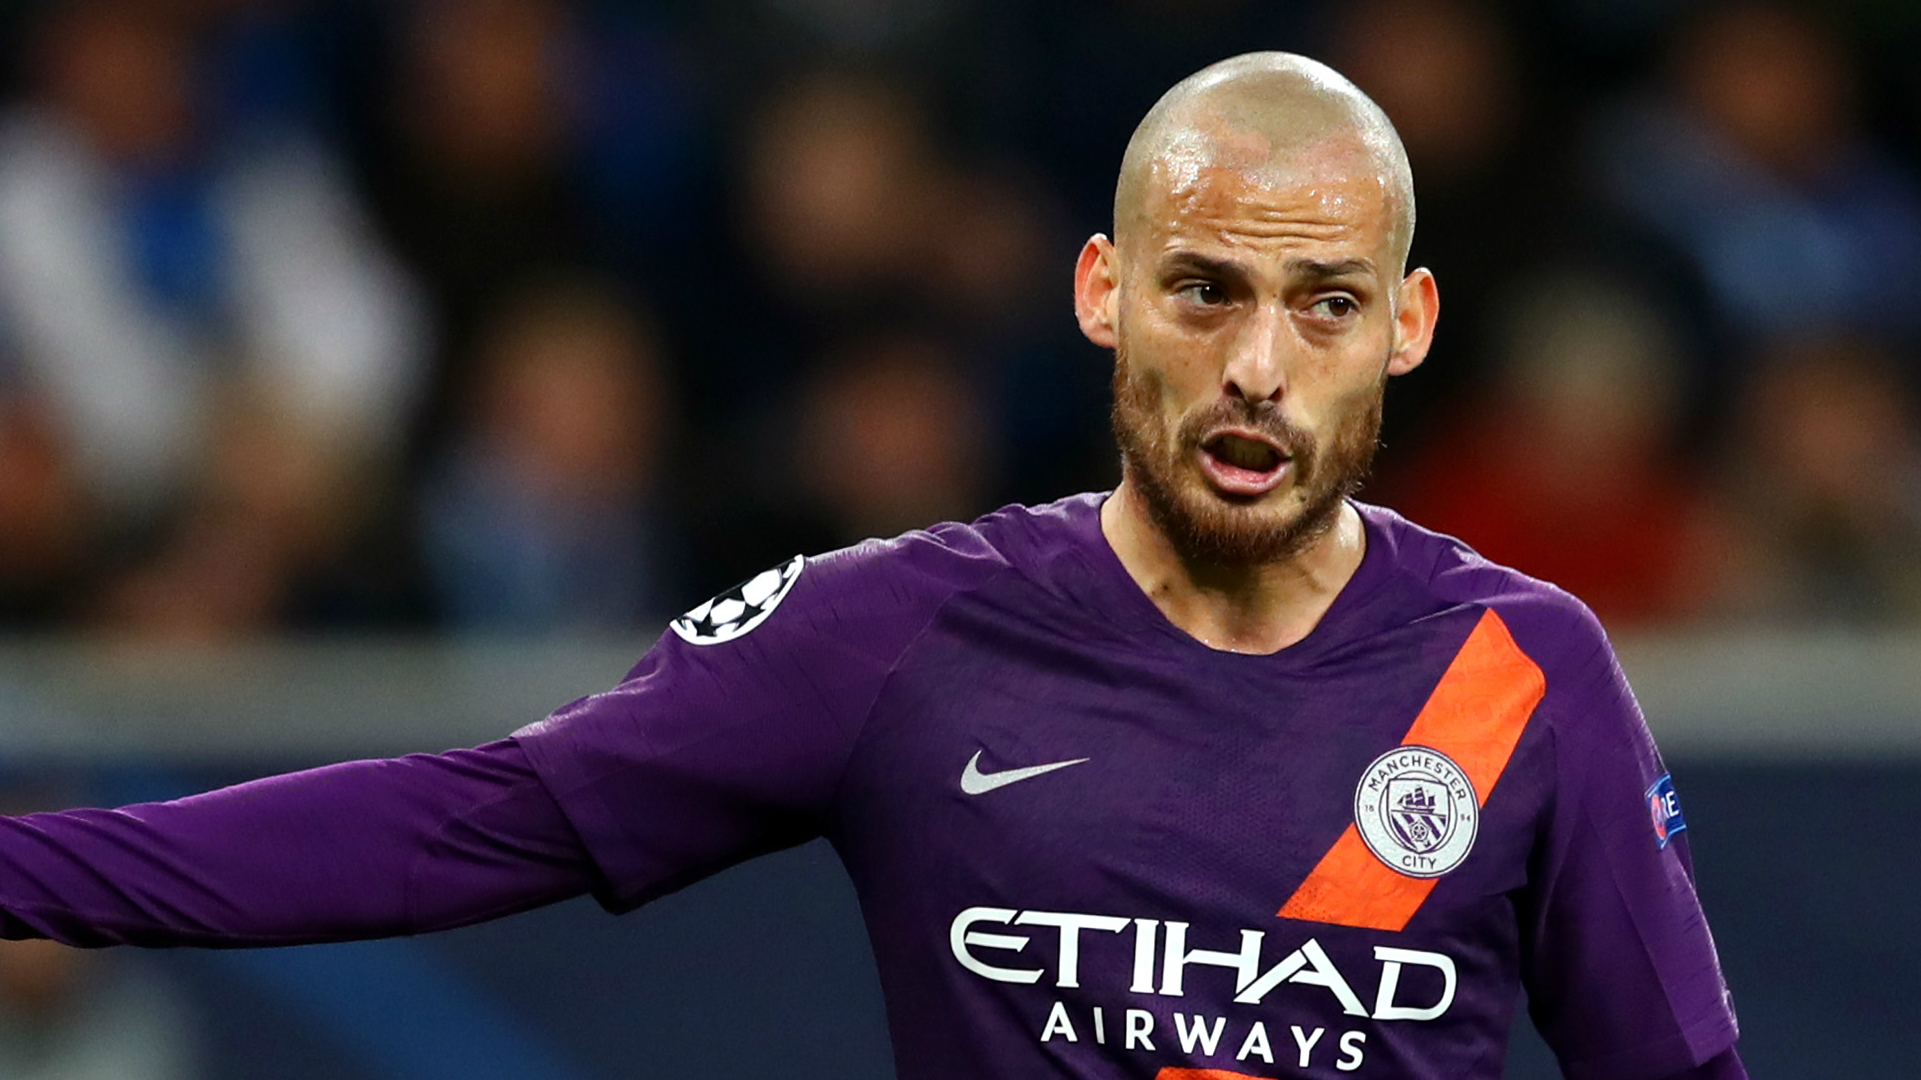 David Silva Hoffenheim Manchester City 2018